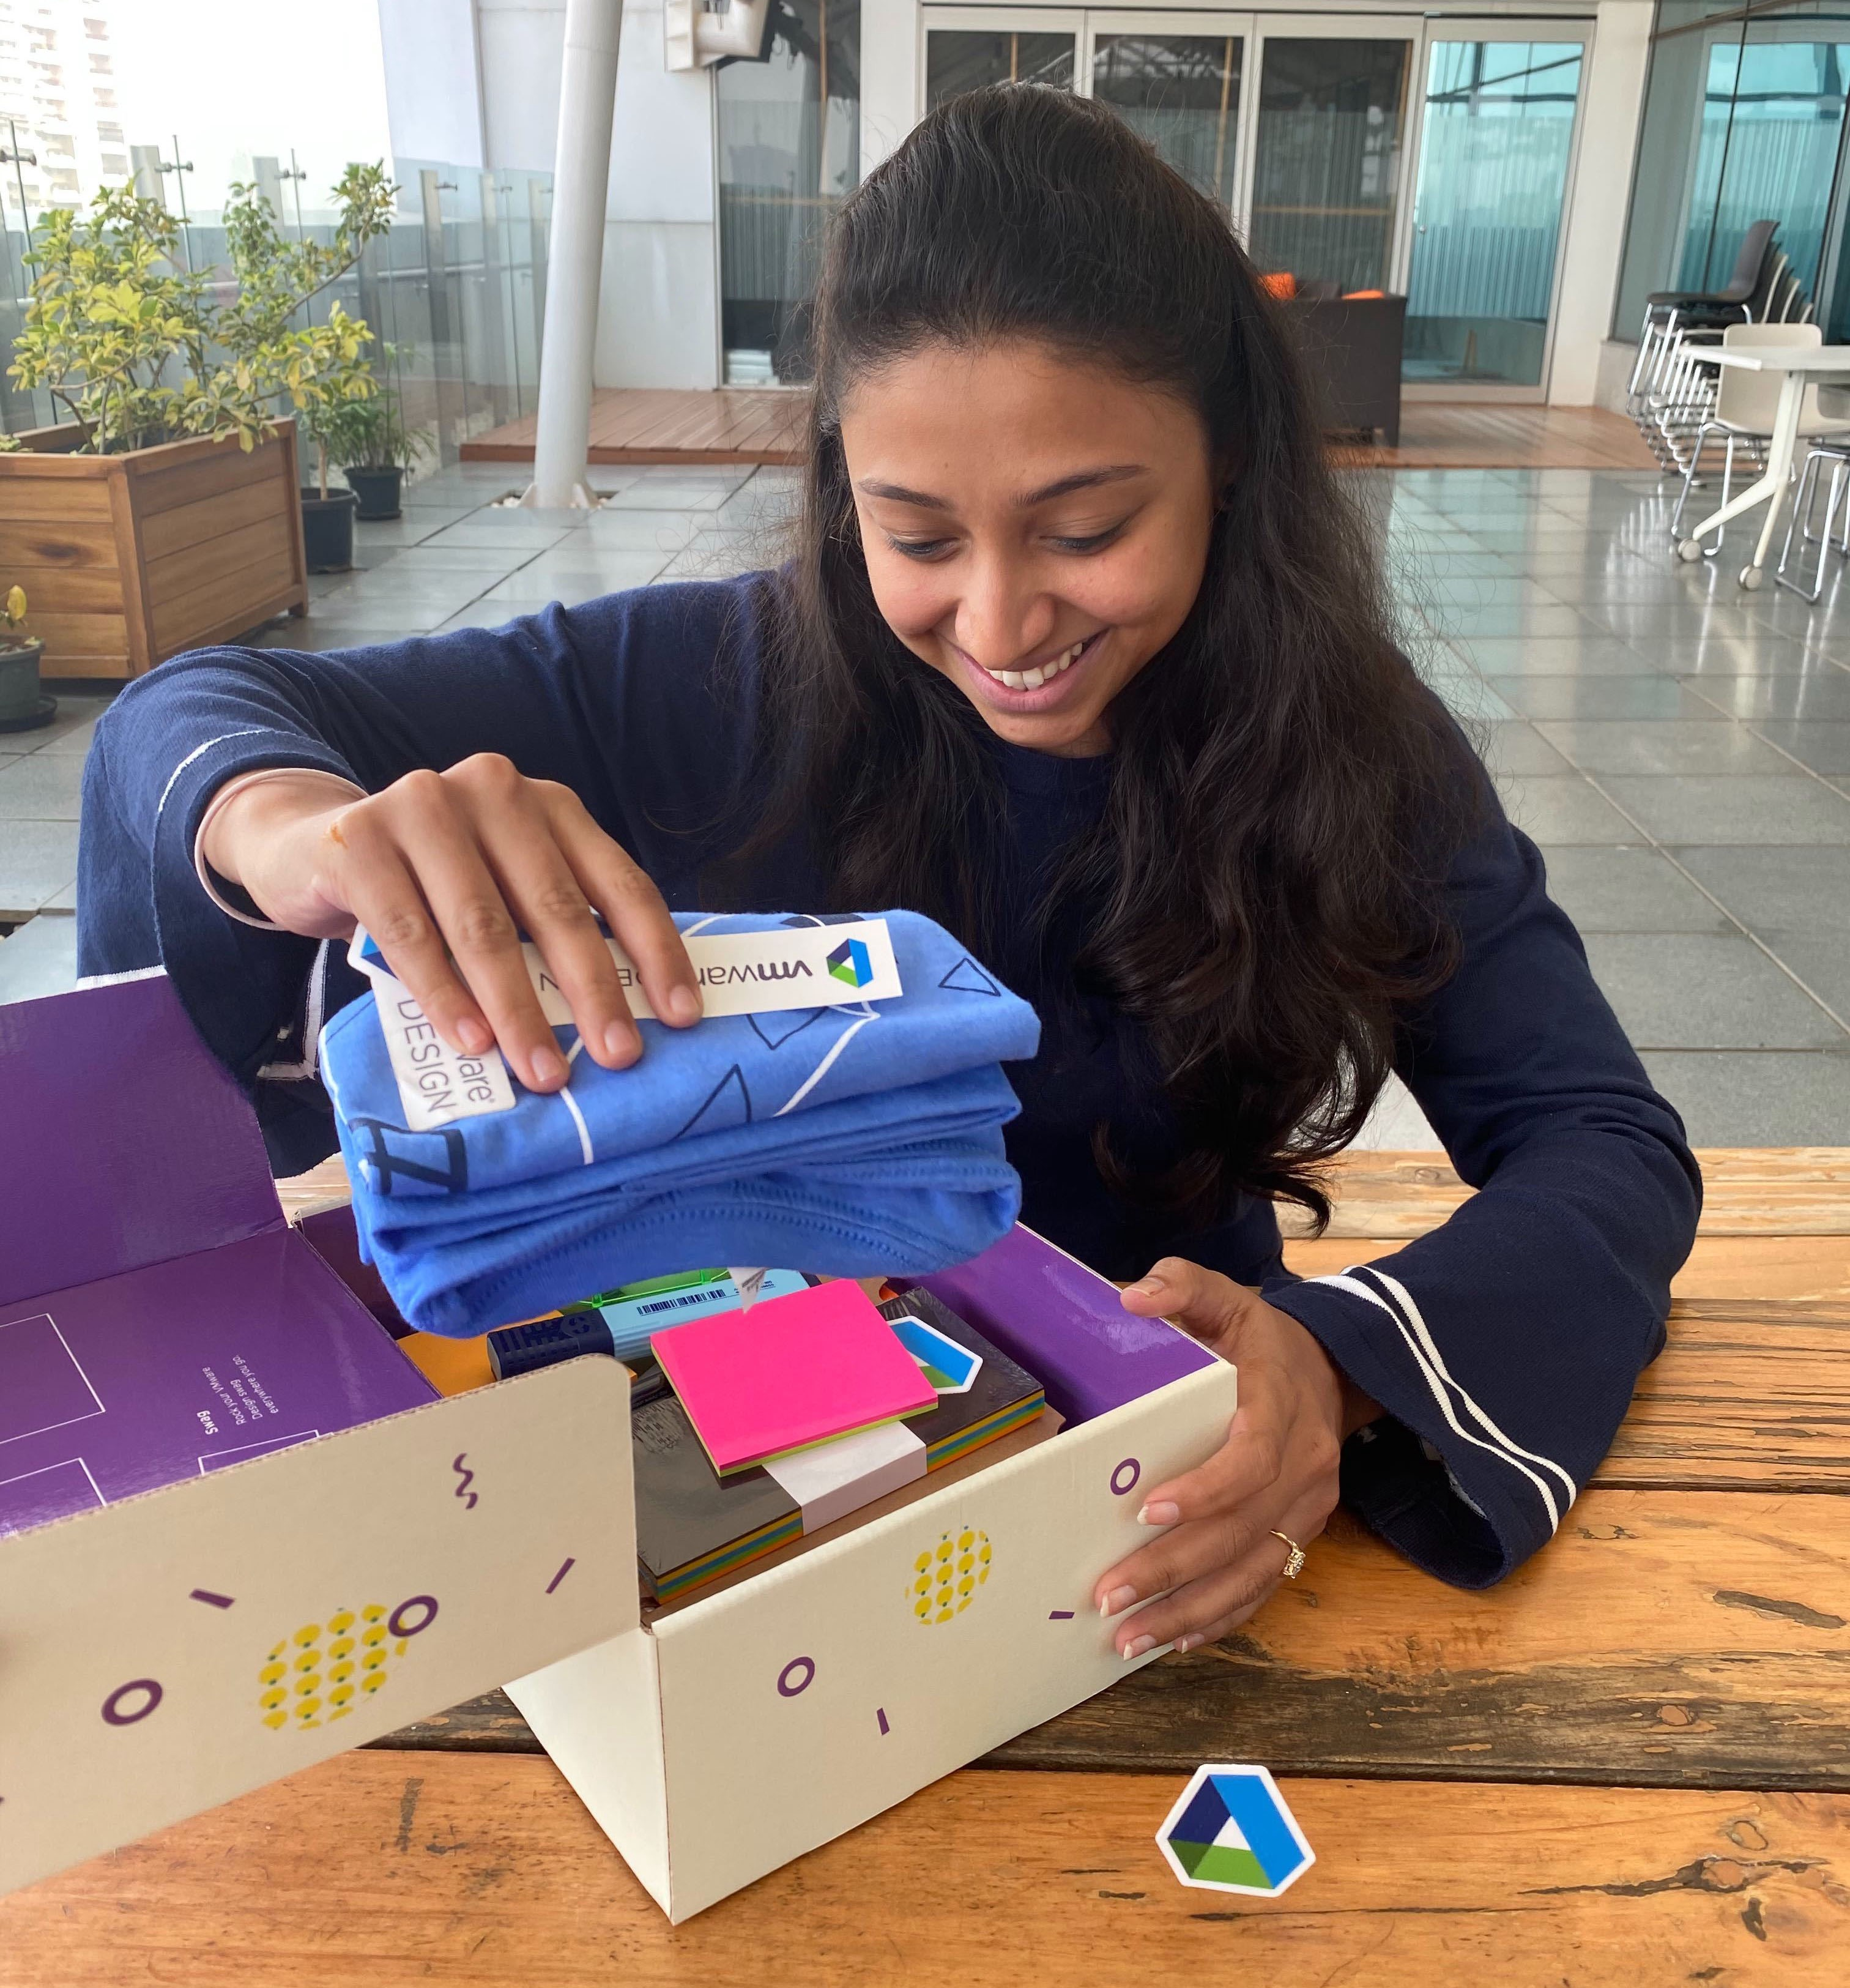 Shibani, one of our newest hires, opening her welcome kit and taking out a VMware design t-shirt.